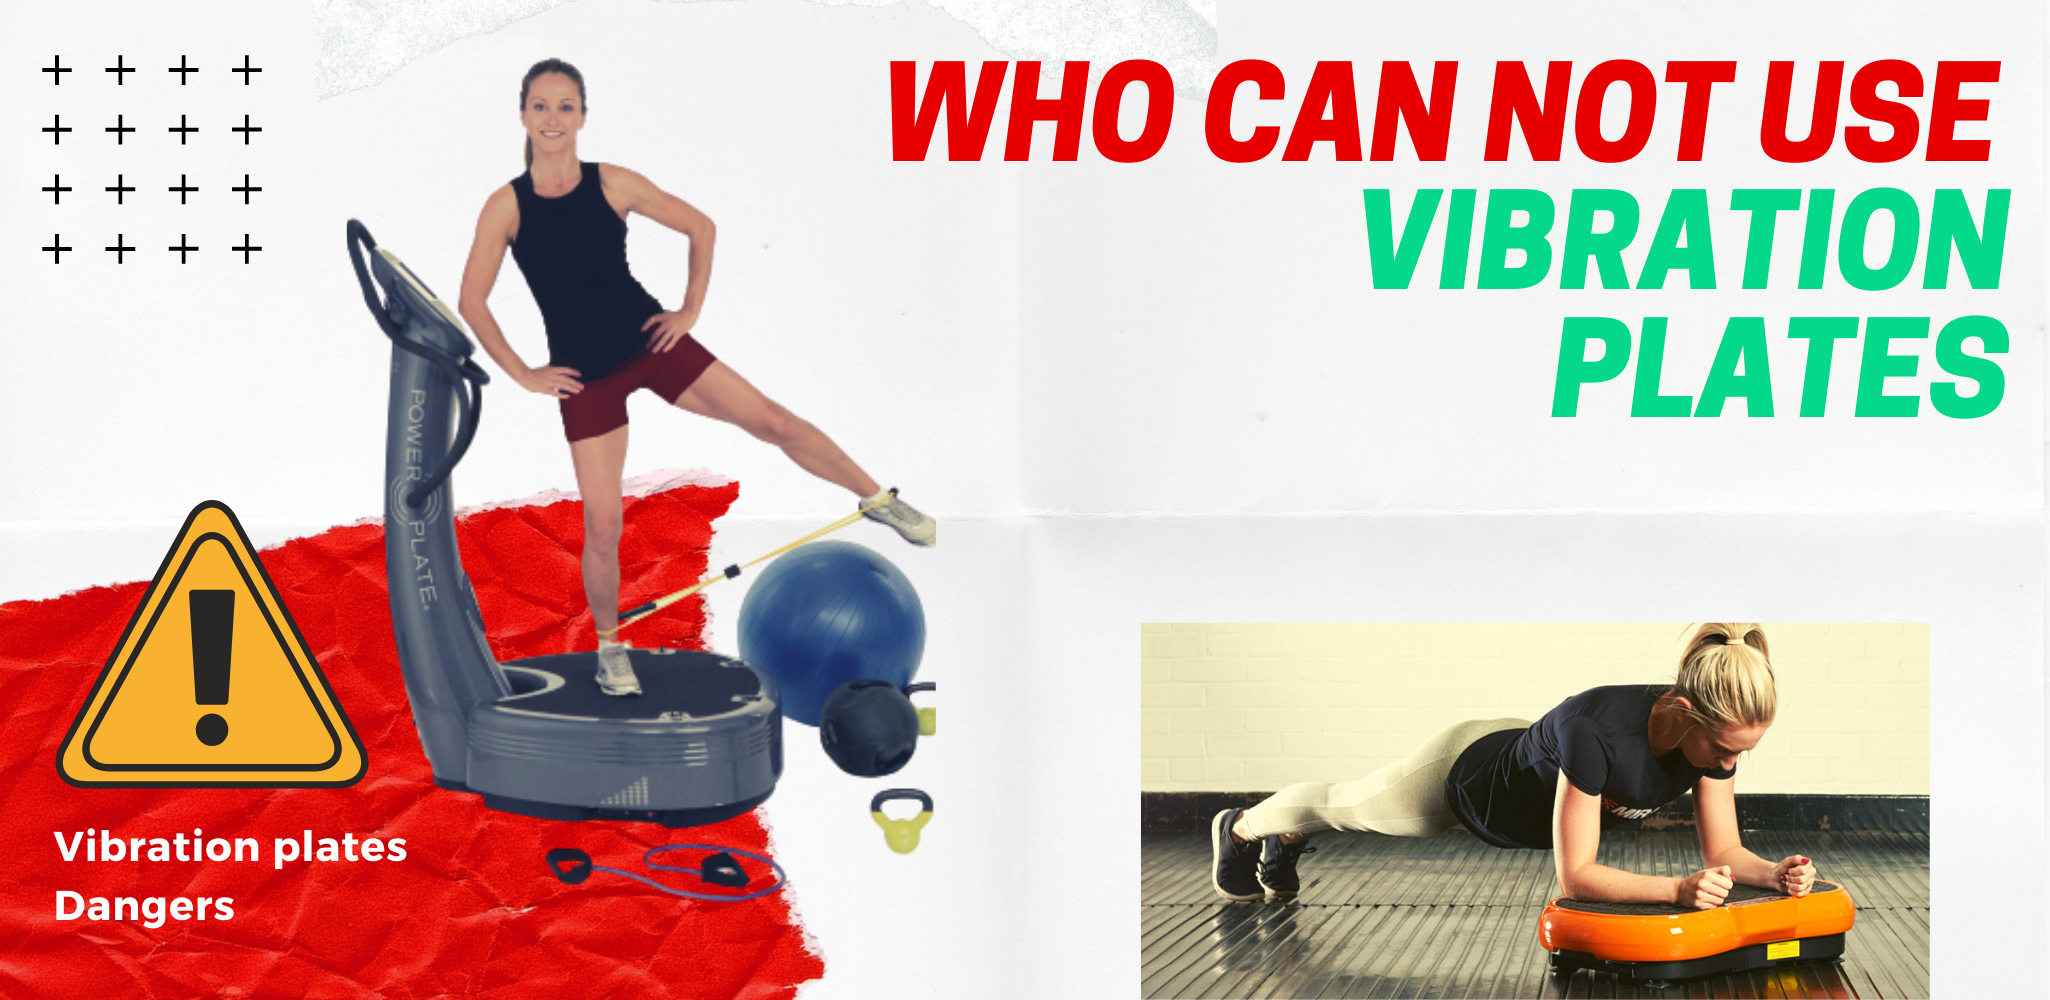 Who can not use vibration plates